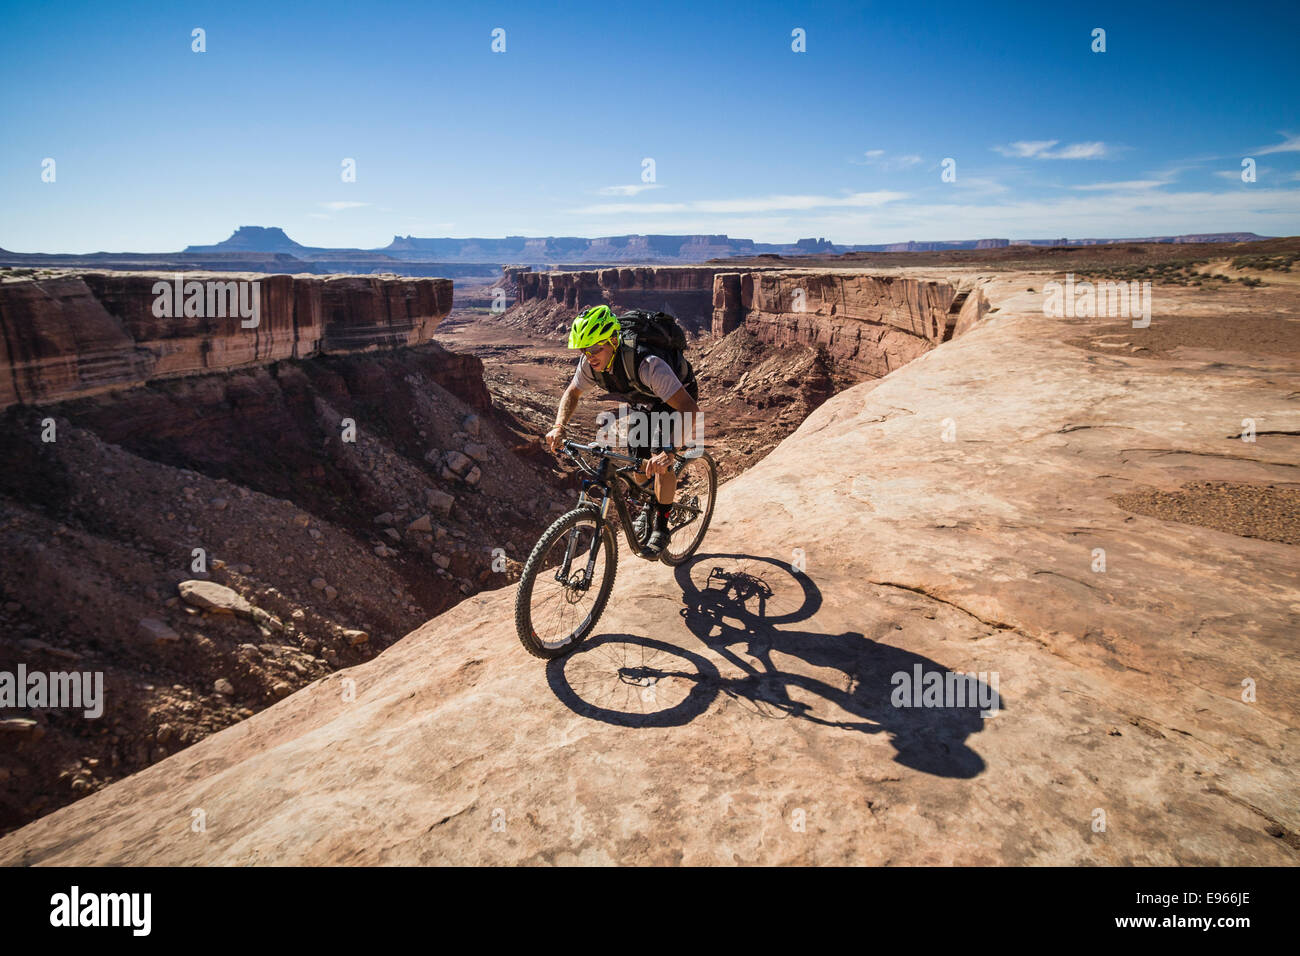 Wes Shirey mountain biking on the White Rim trail, Canyonlands National Park, Moab, Utah. Stock Photo